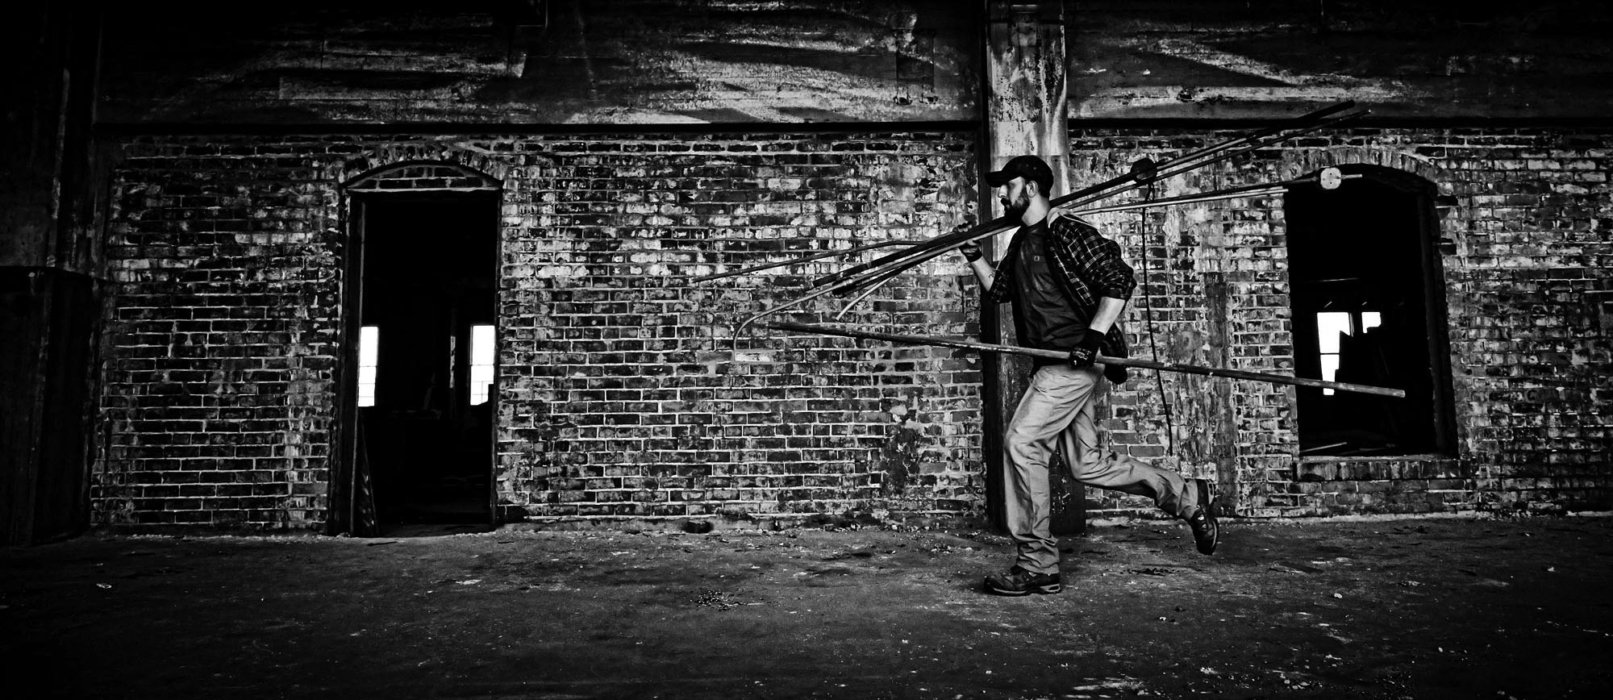 A man walking through an old building carrying pipes